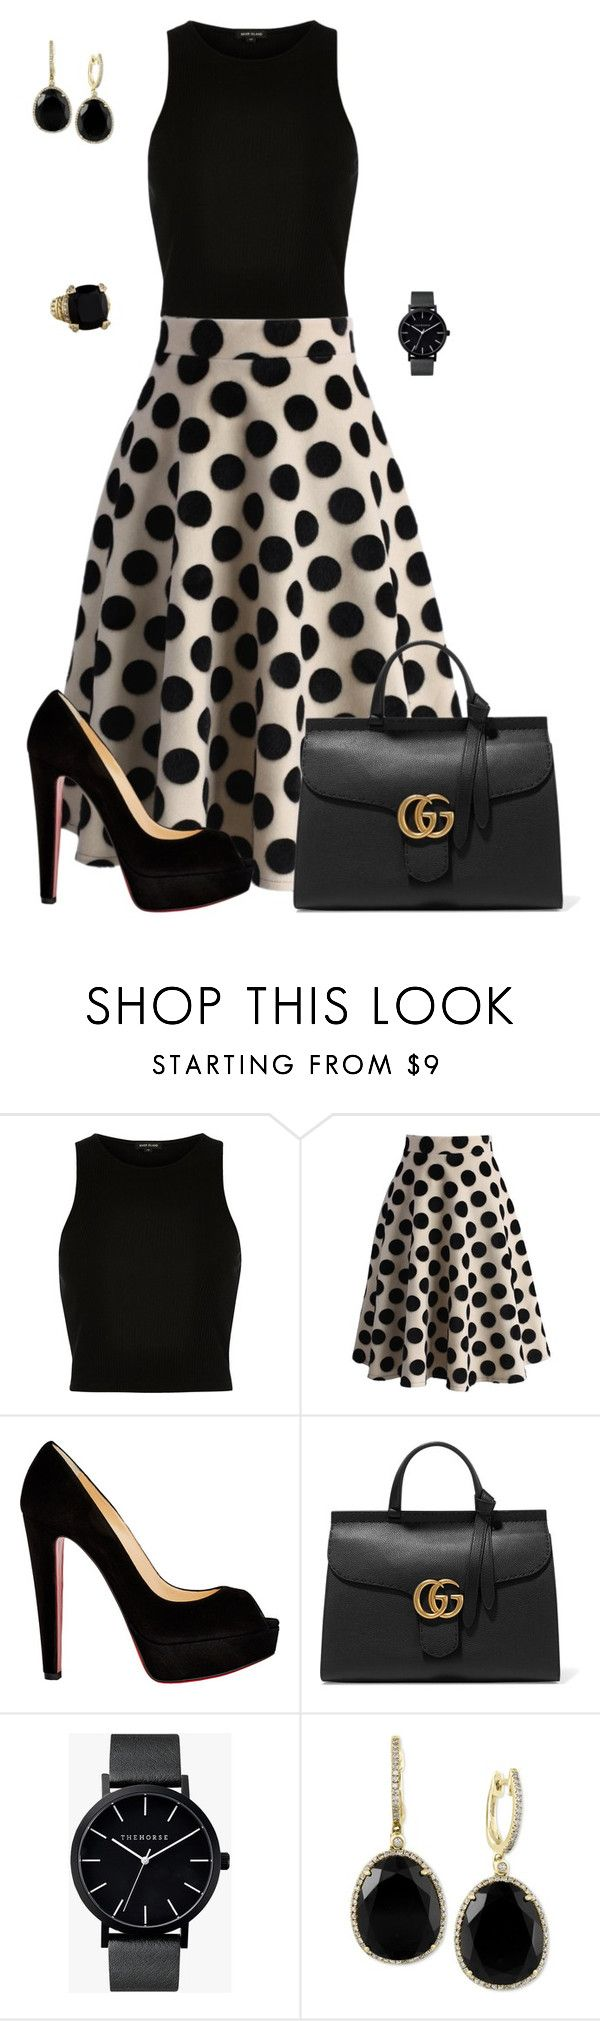 """""""Untitled #658"""" by angela-vitello on Polyvore featuring River Island, Chicwish, Christian Louboutin, Gucci, The Horse, Effy Jewelry, Judith Ripka, women's clothing, women's fashion and women"""